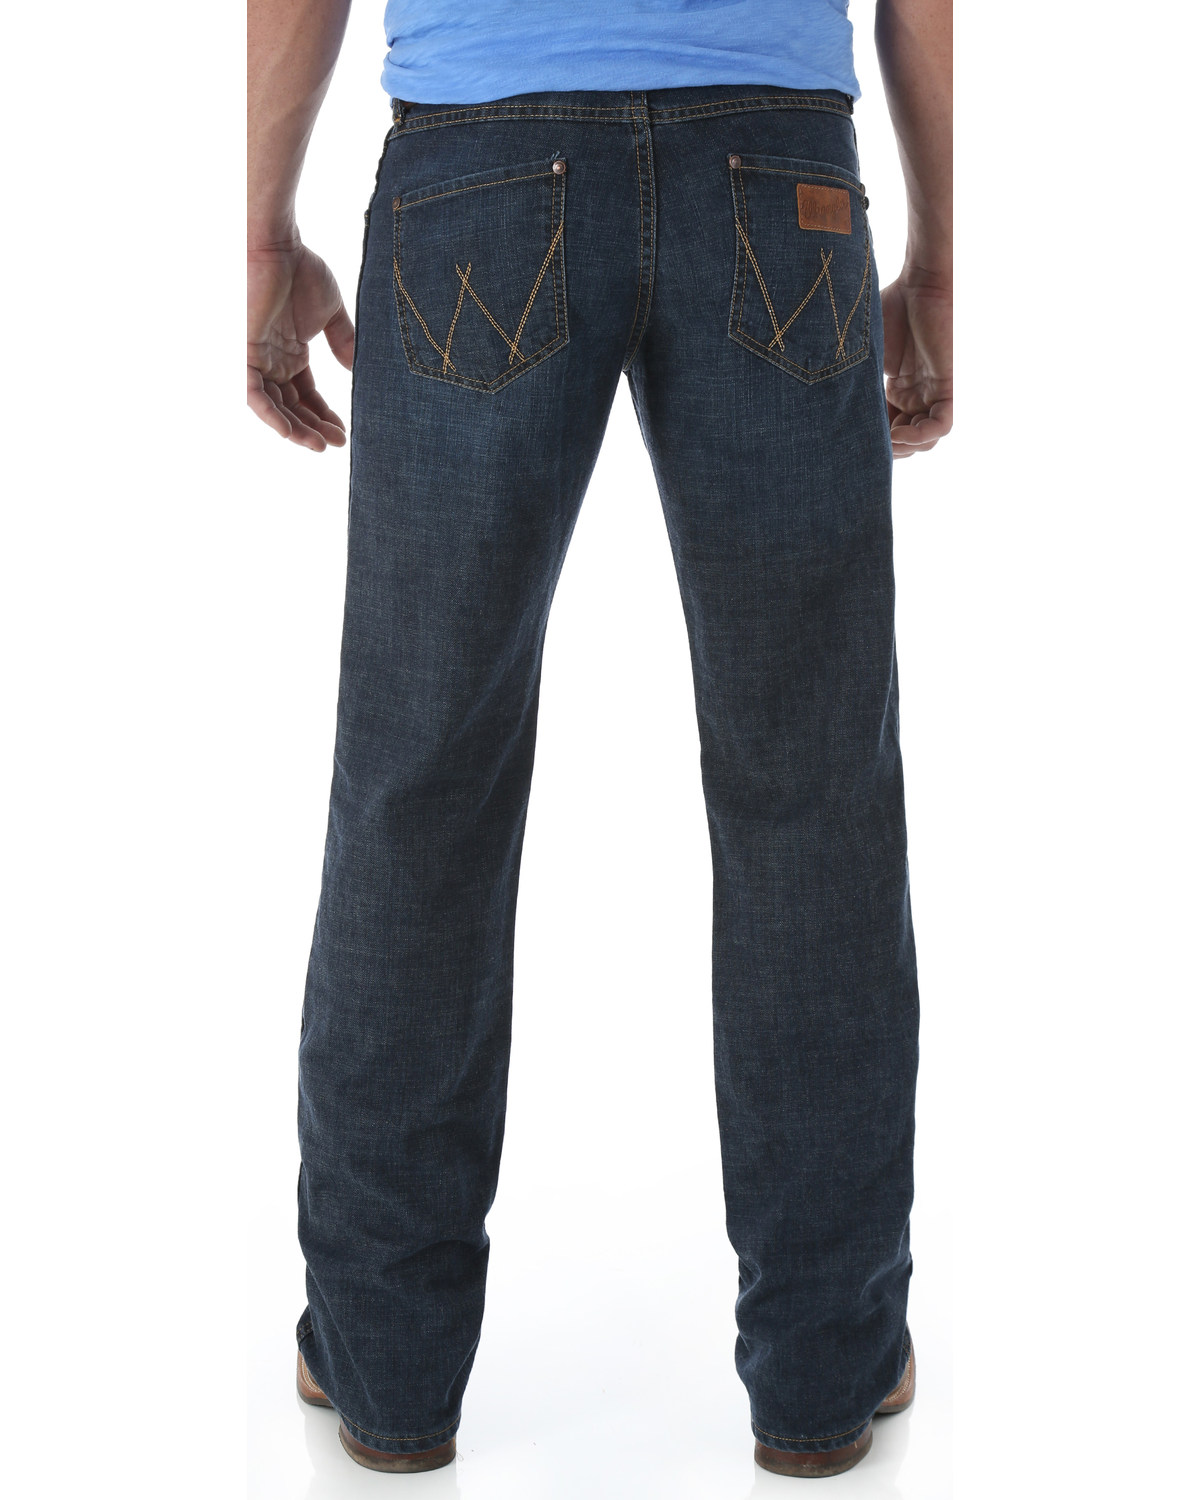 dbfc2c99a9e92 Wrangler Retro Men s Relaxed Fit Boot Cut Jeans